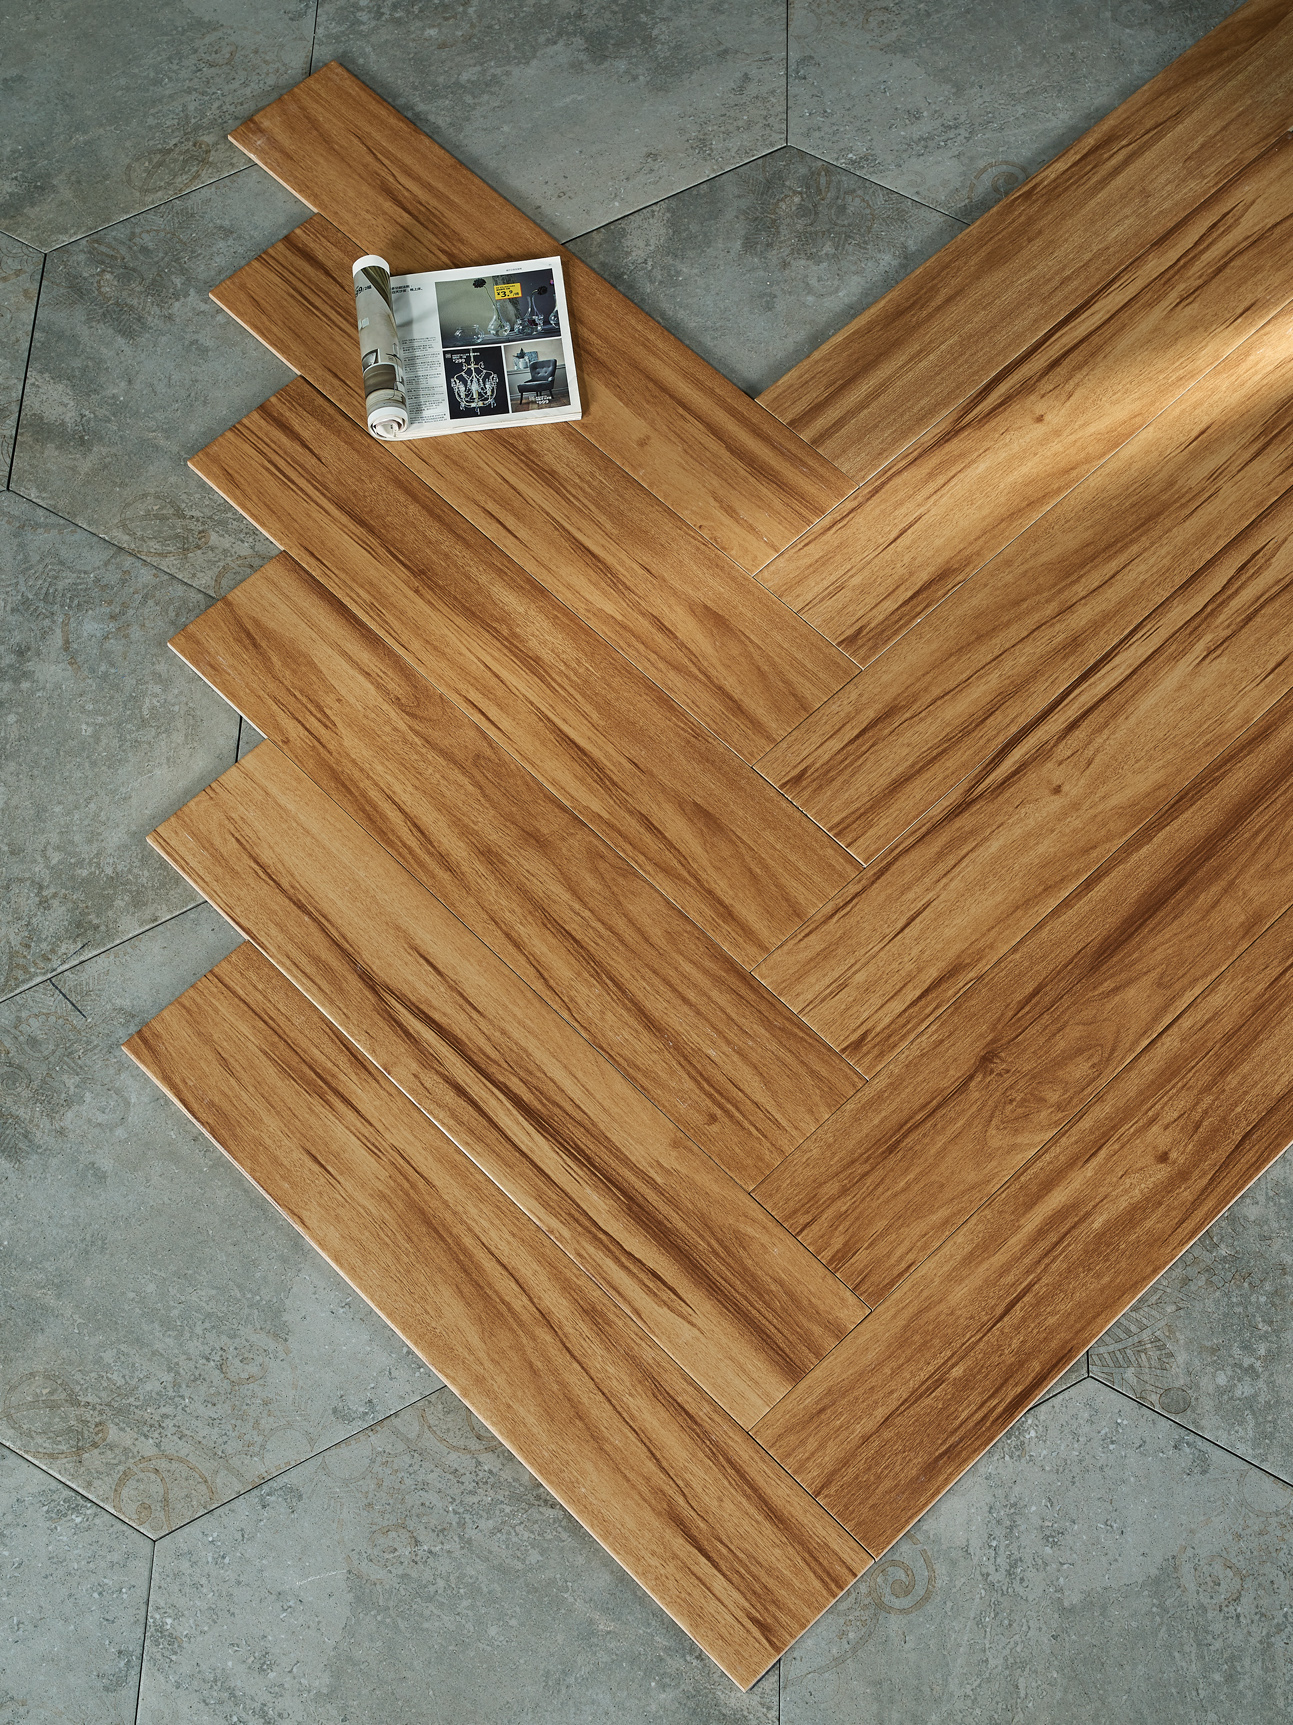 Philippines Price Parque Wooden Texture Floor Ceramic Wood Tile Prices In Ghana Buy Wood Tile Ceramic Wood Tile Wooden Floor Tiles Product On Alibaba Com